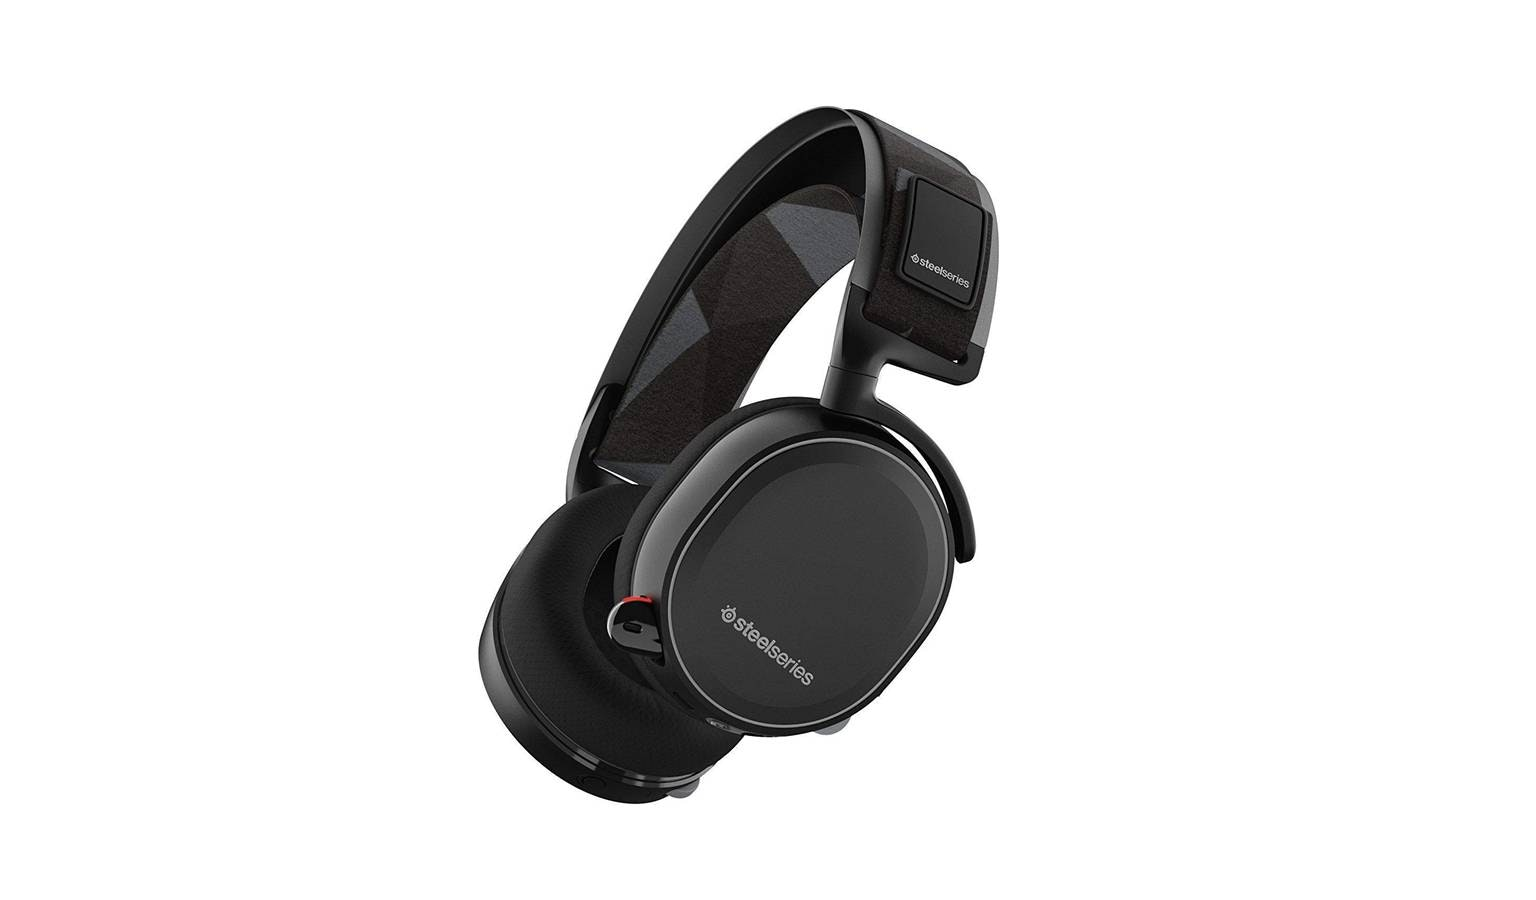 SteelSeries SS-61463 Arctis 7 Wireless Gaming Headset